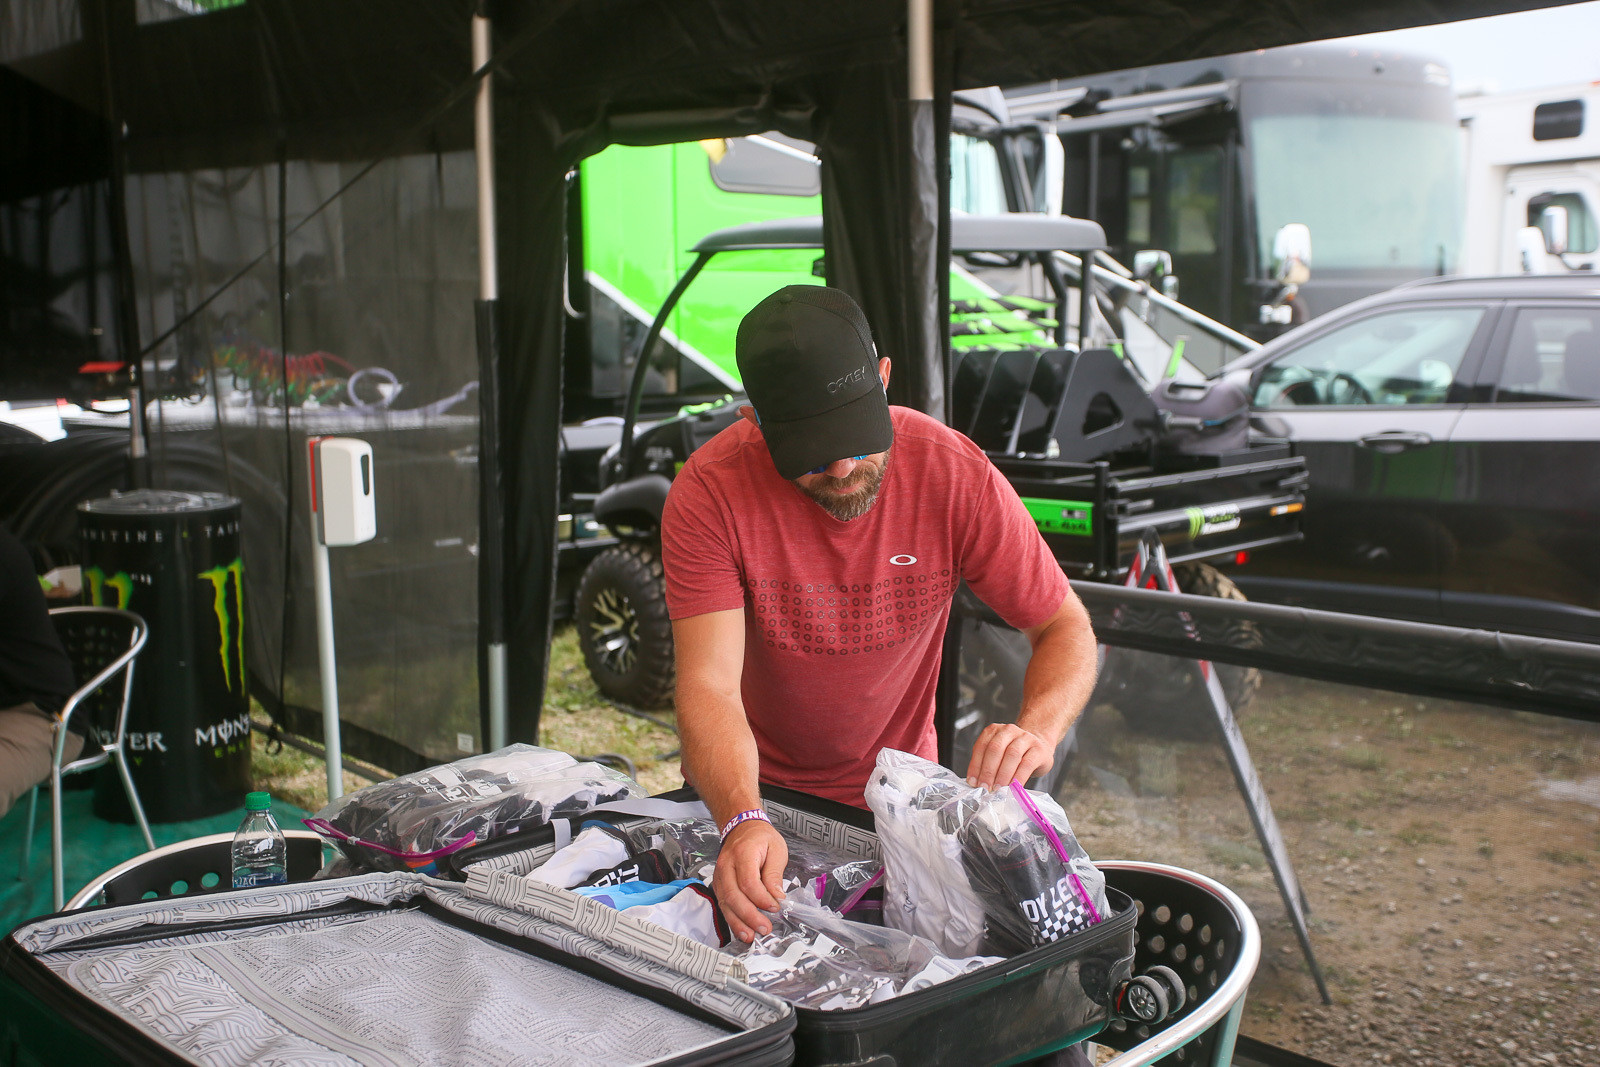 Most of the goggle guys have pre-done suitcases with mud-prepped goggles that they pull out when needed.